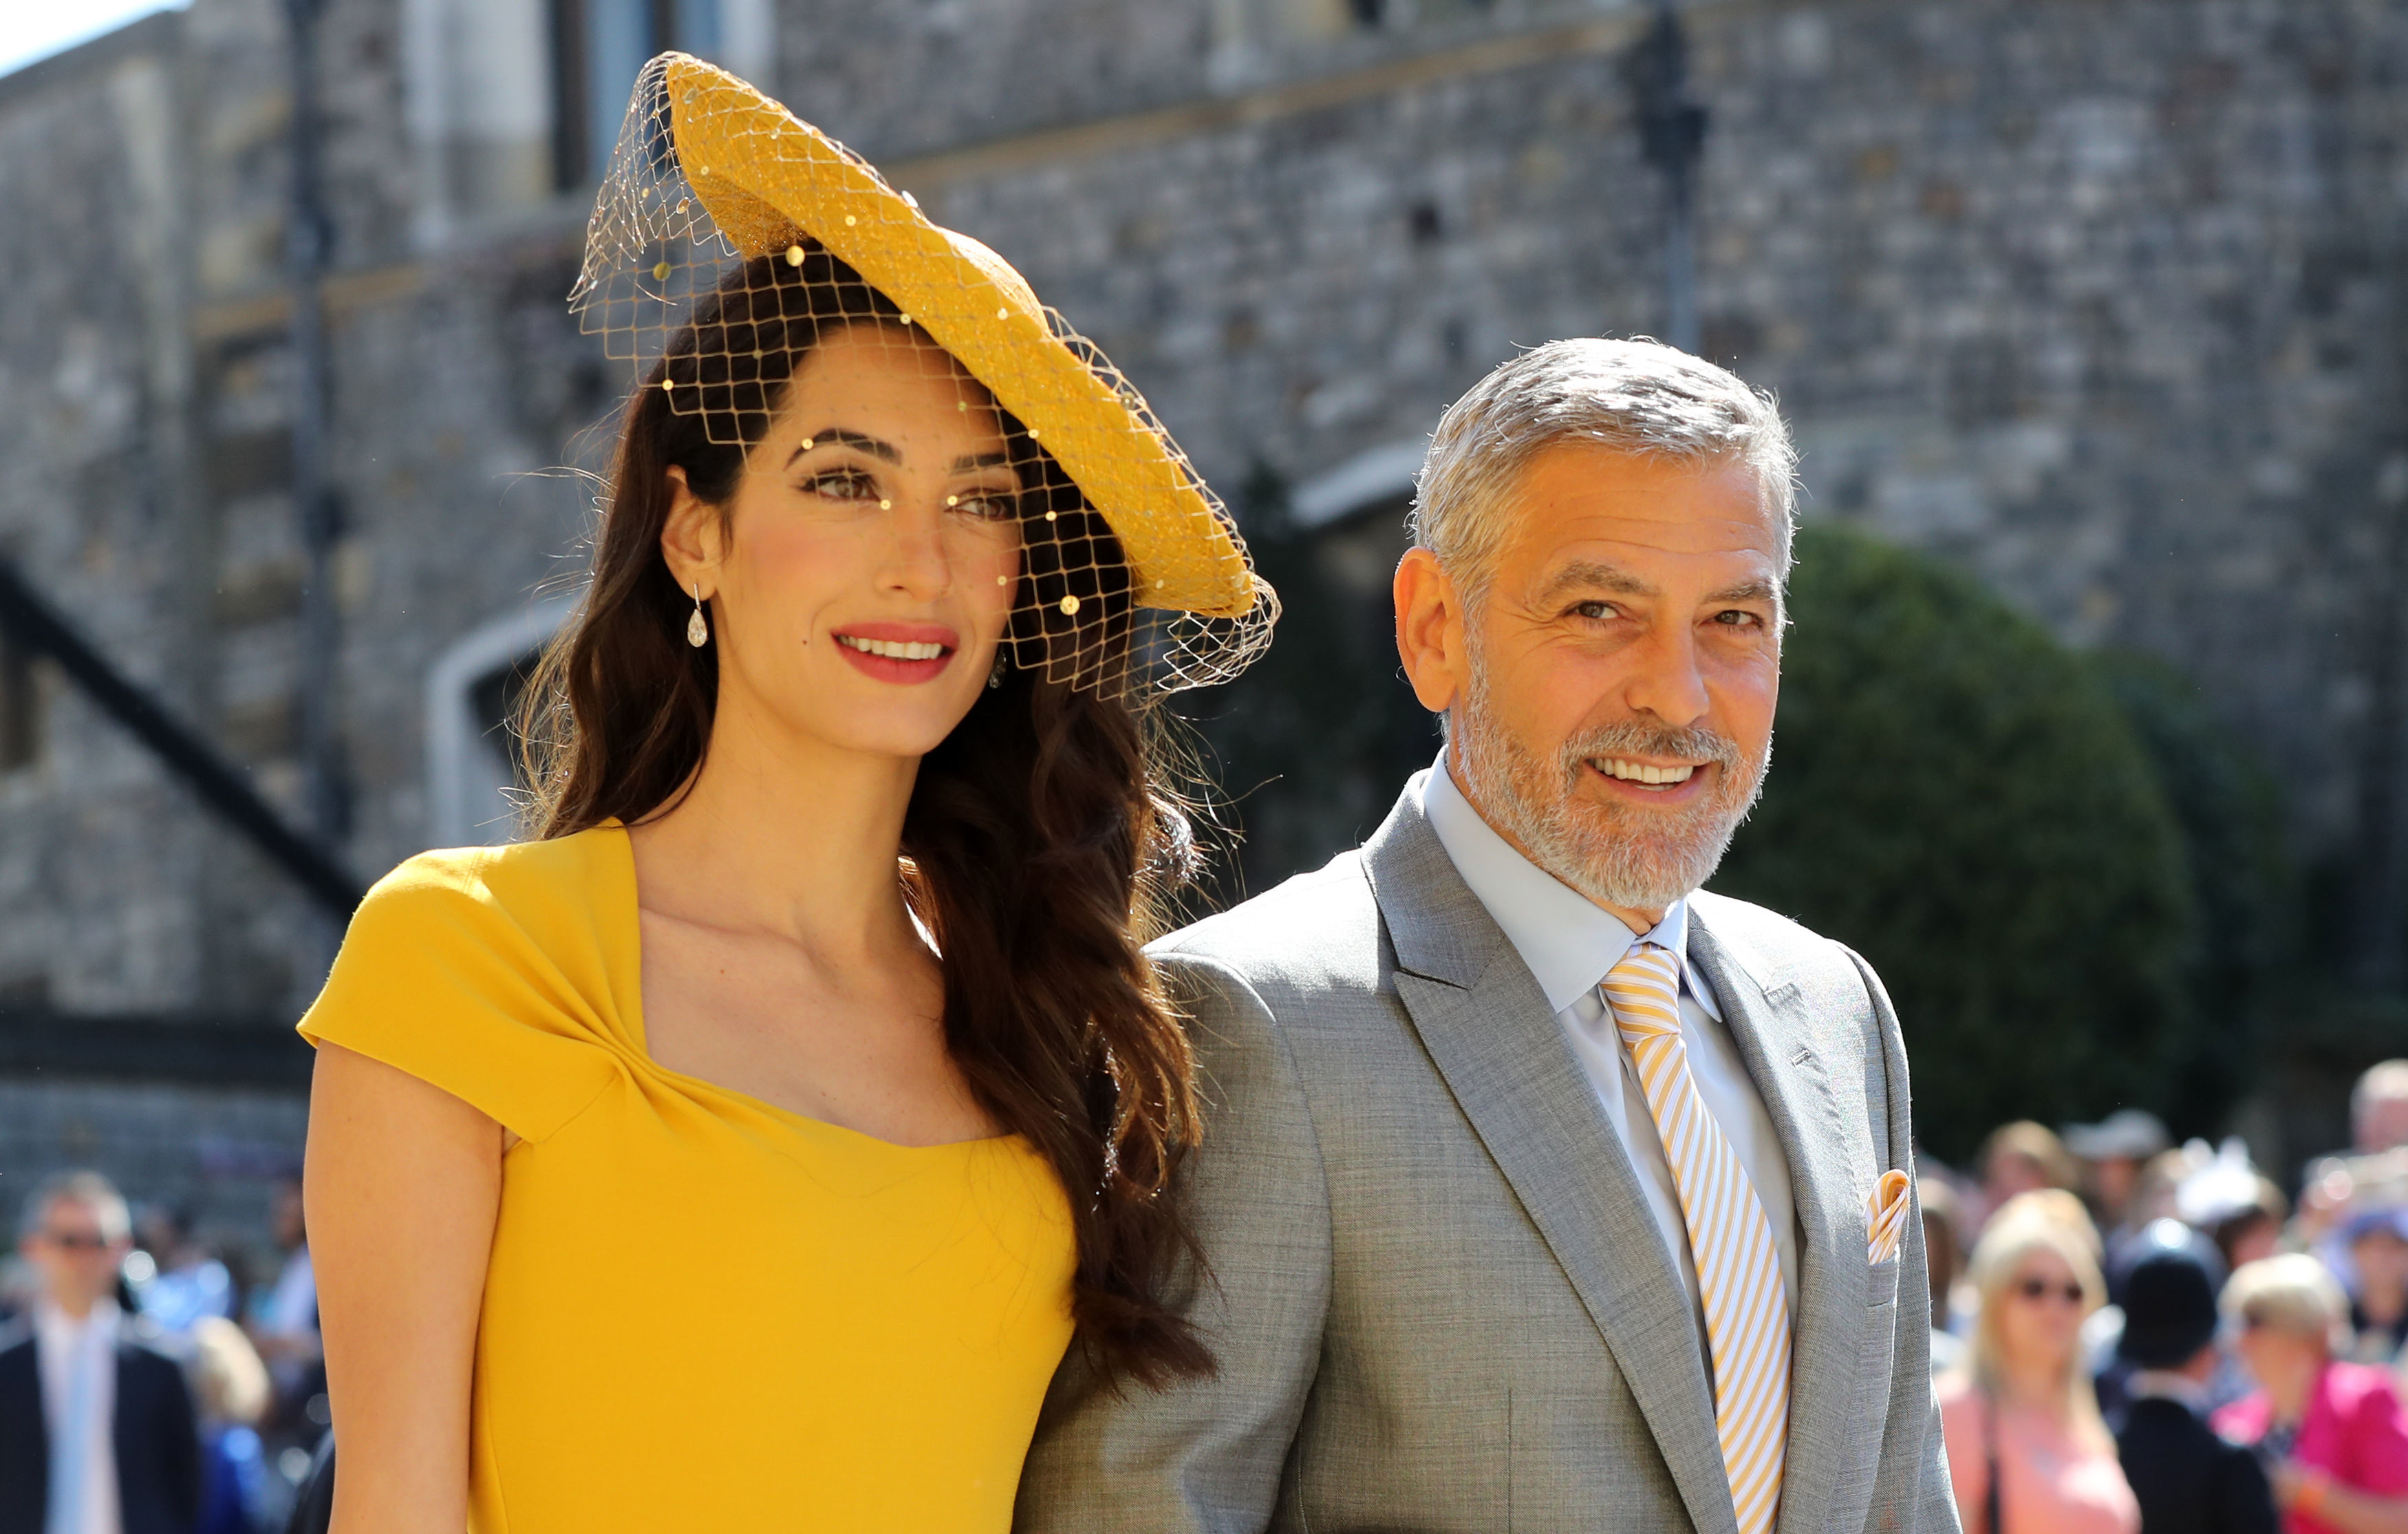 Amal Clooney and George Clooney arrive attending the wedding of Meghan Markle and Prince Harry (Gareth Fuller/PA Wire)